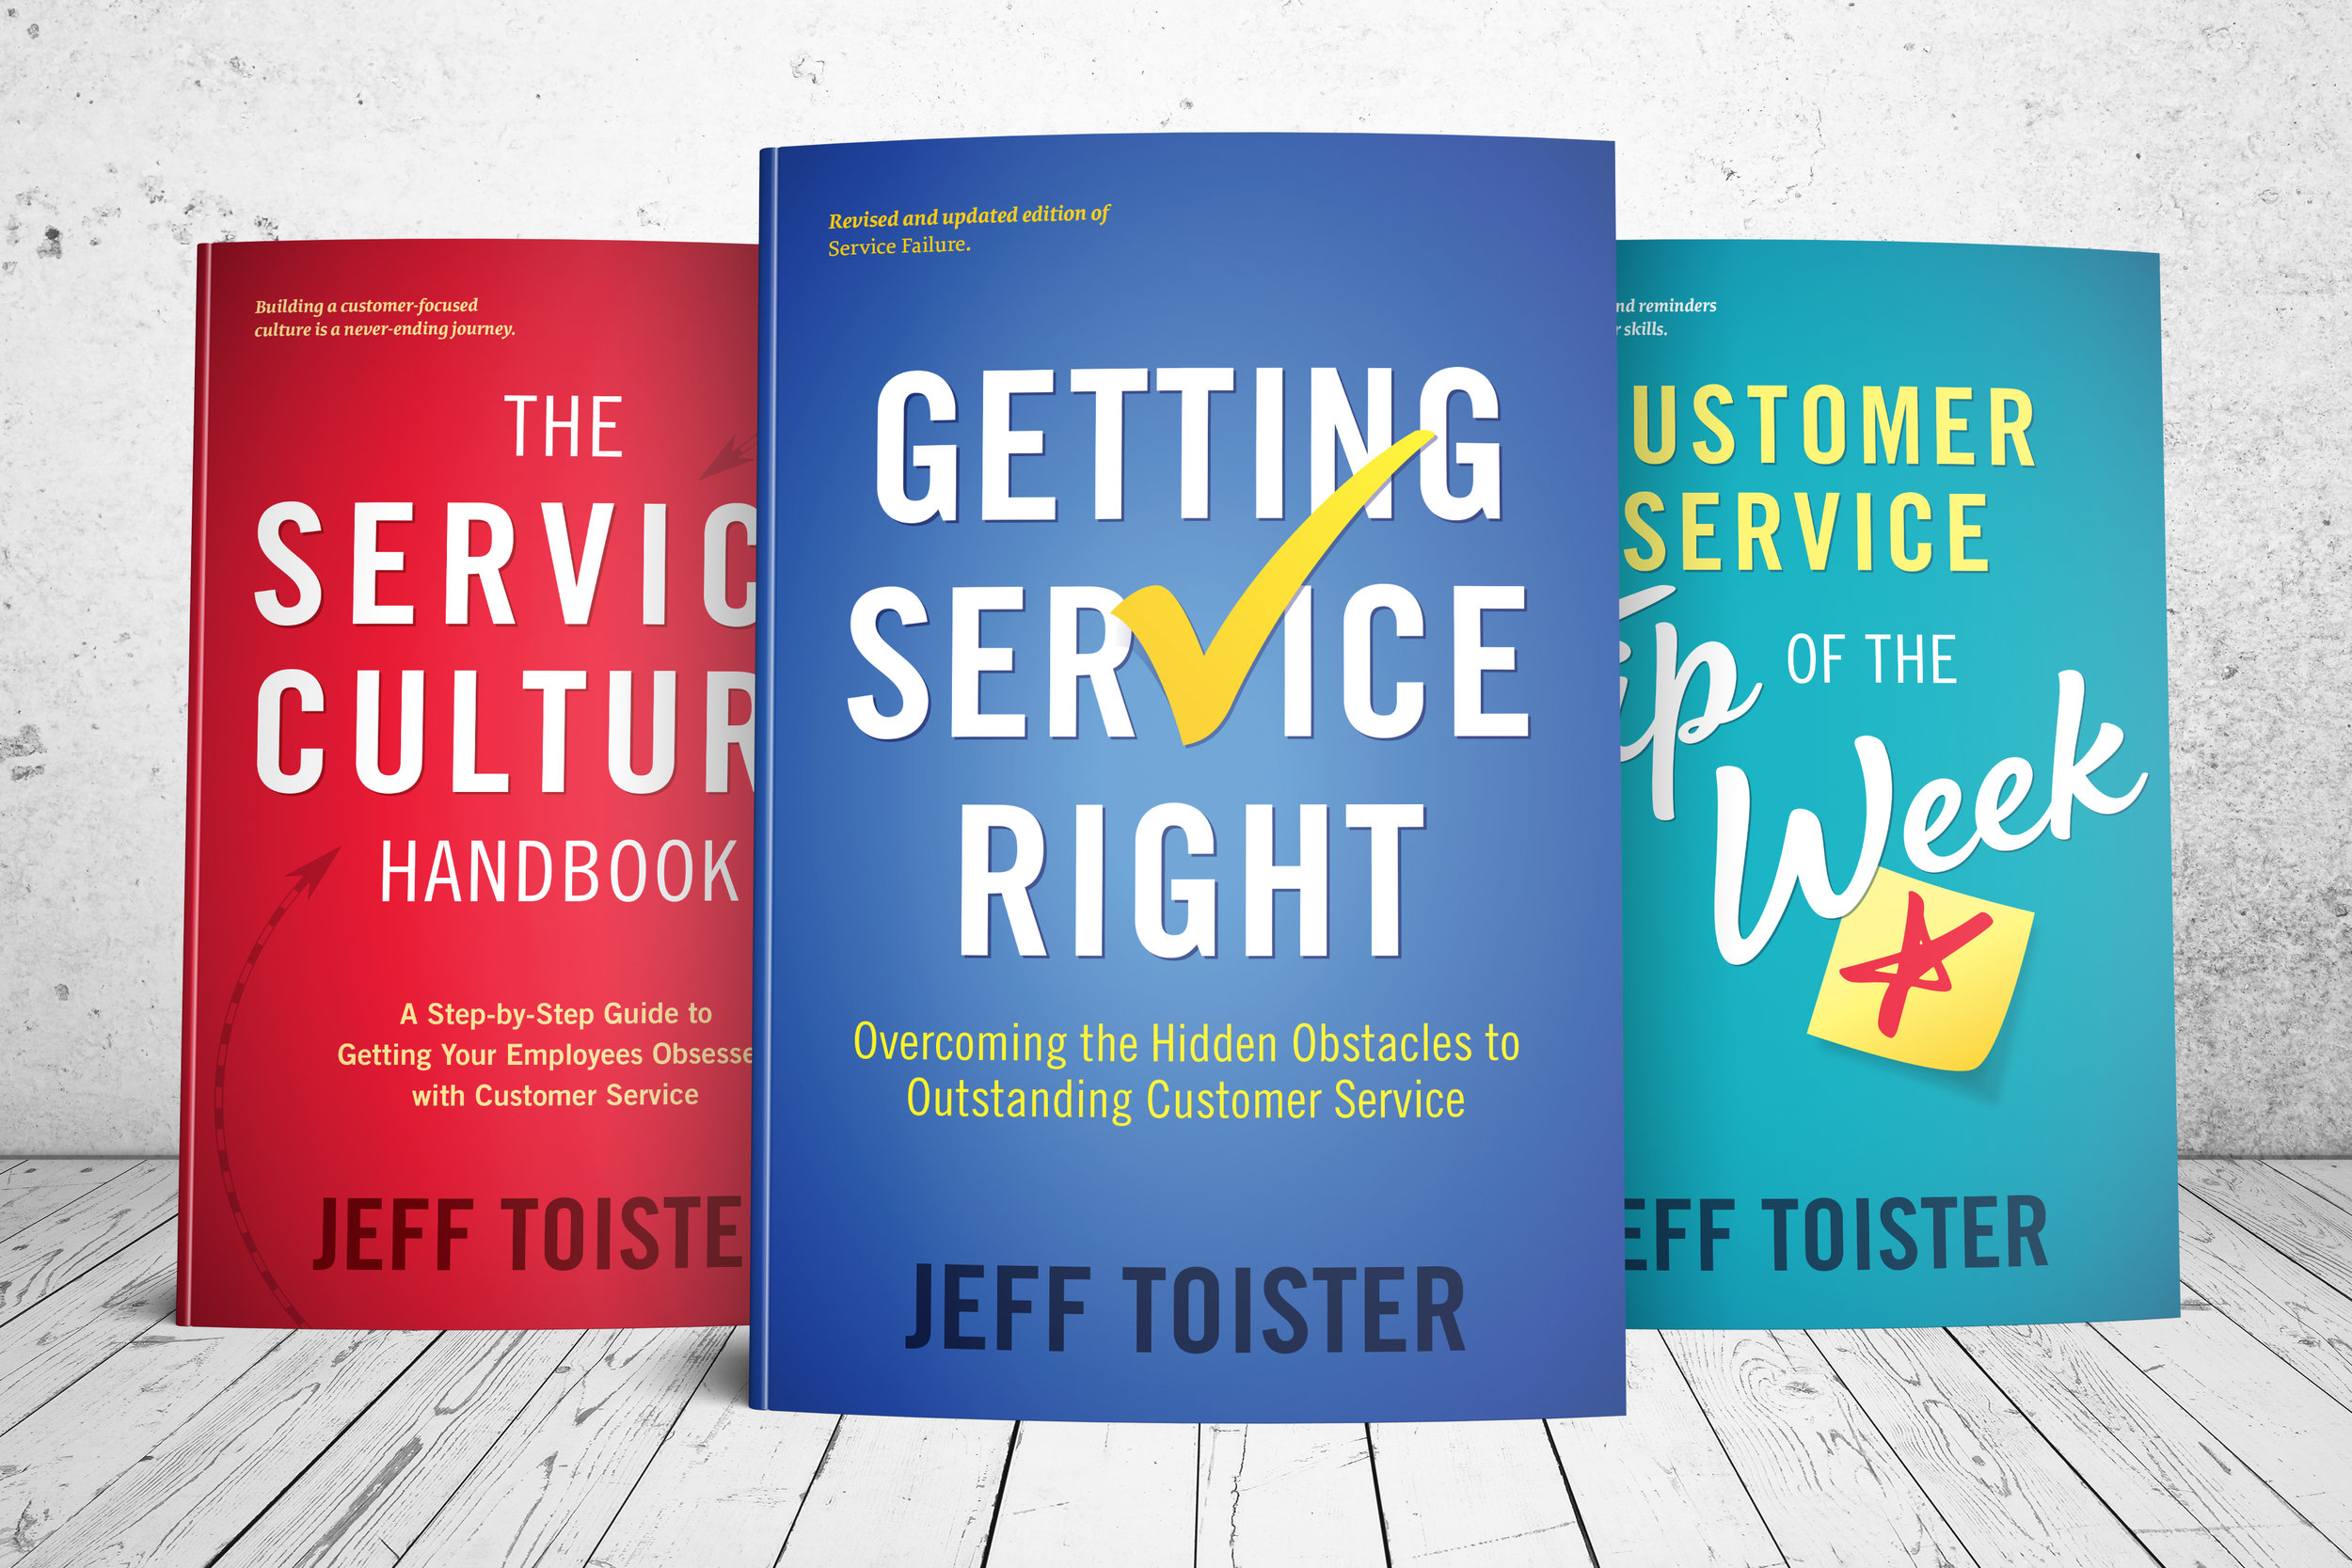 Cover images for  The Service Culture Handbook, Getting Service Right,  and  Customer Service Tip of the Week.